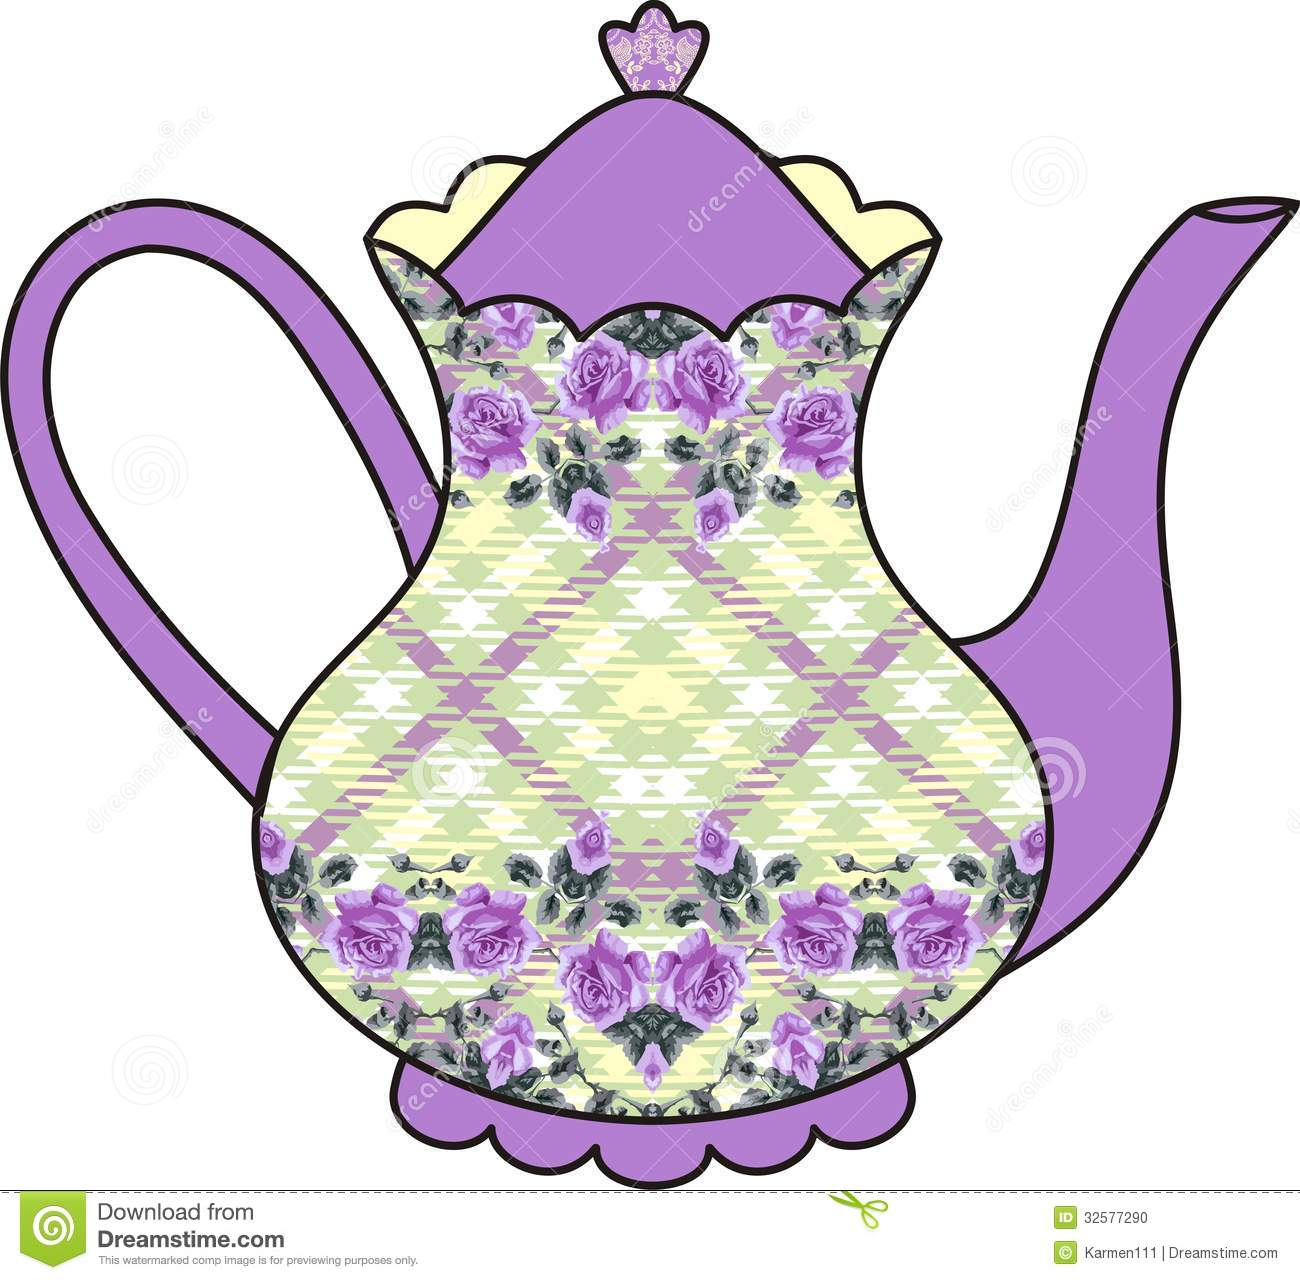 Tea Time Clip Art Floral Roses Teapot Ti-Tea Time Clip Art Floral Roses Teapot Time For-16